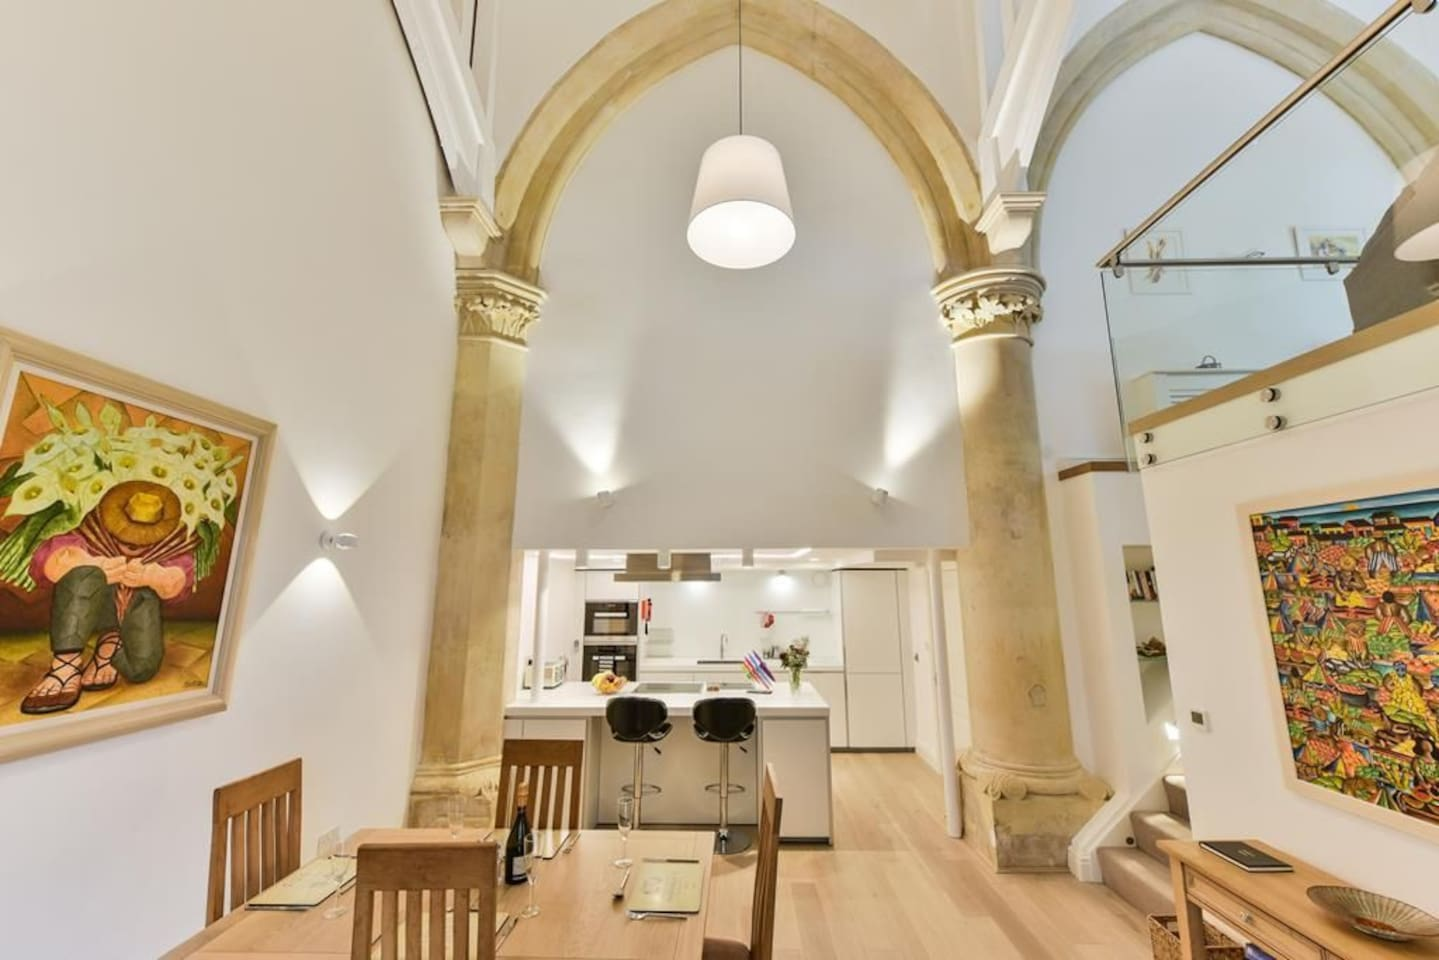 The Arches, Sleep 2, in city centre in old converted church building ...